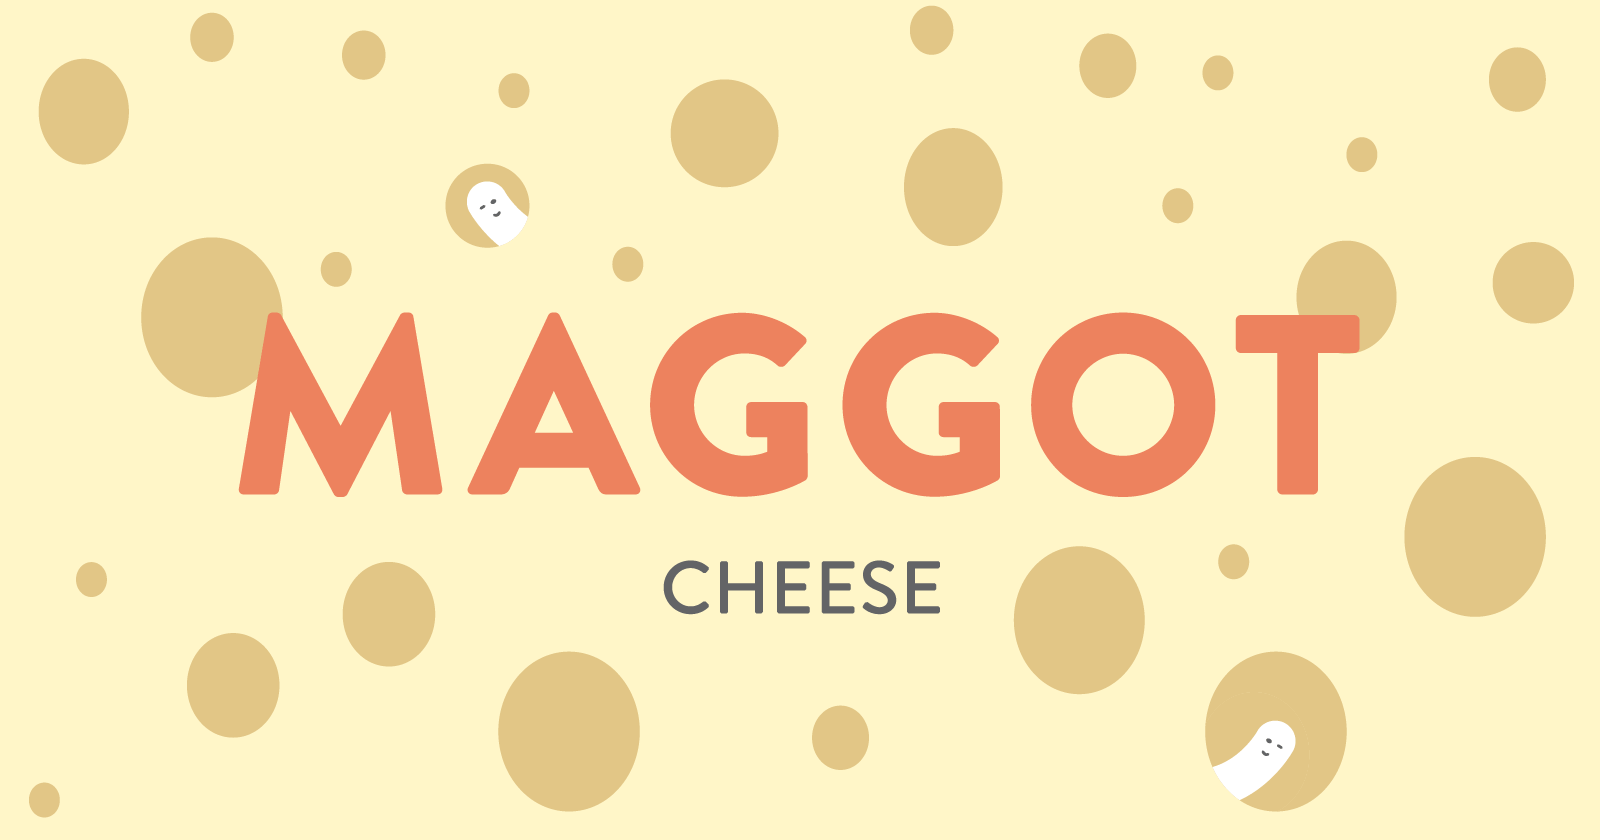 Maggot cheese